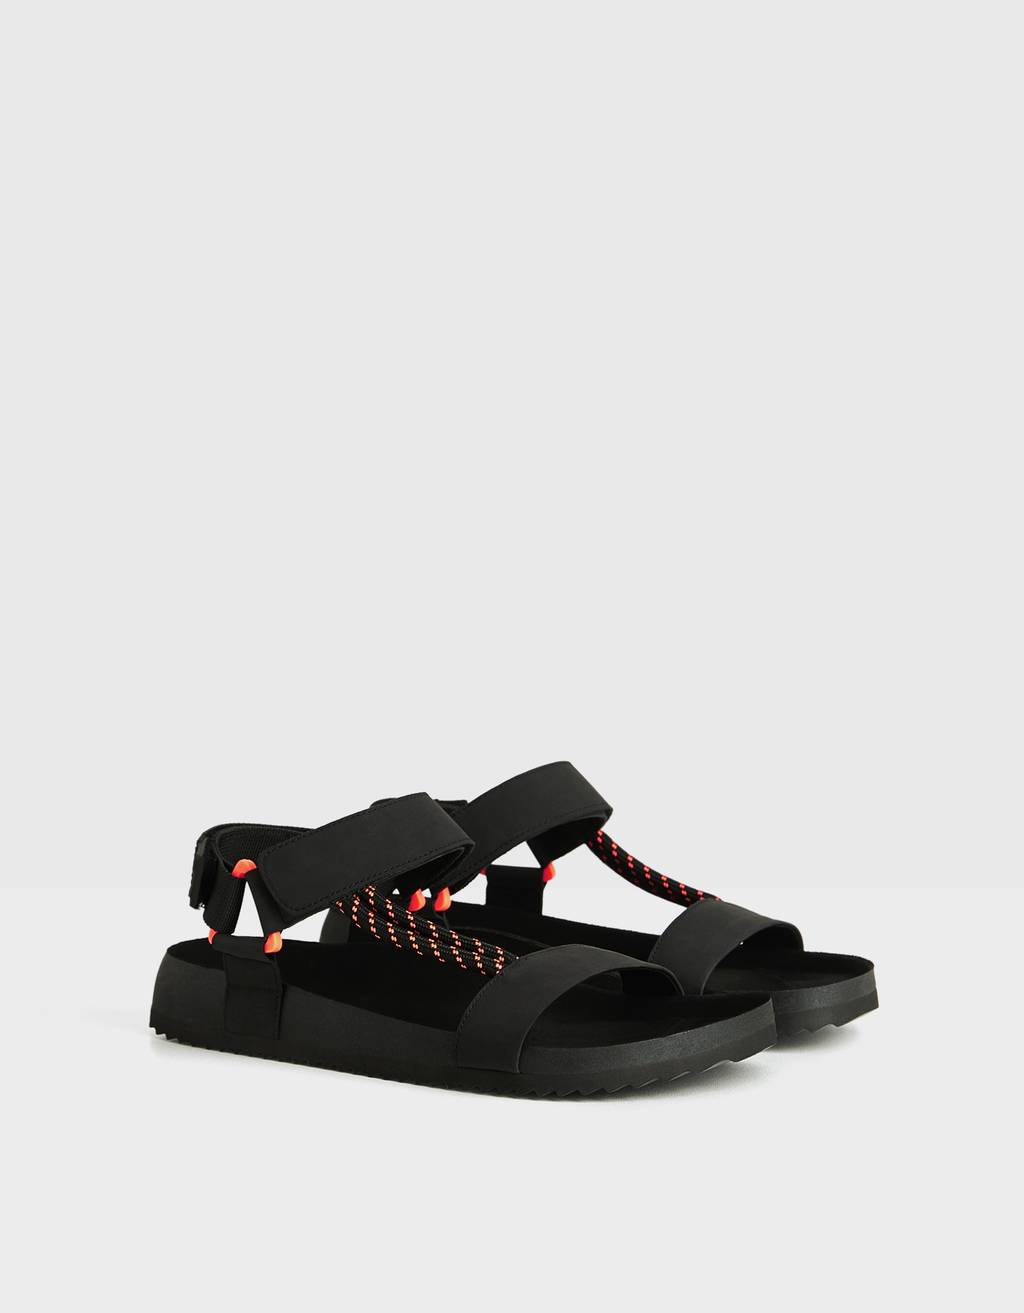 Men's strappy sandals with neon detail